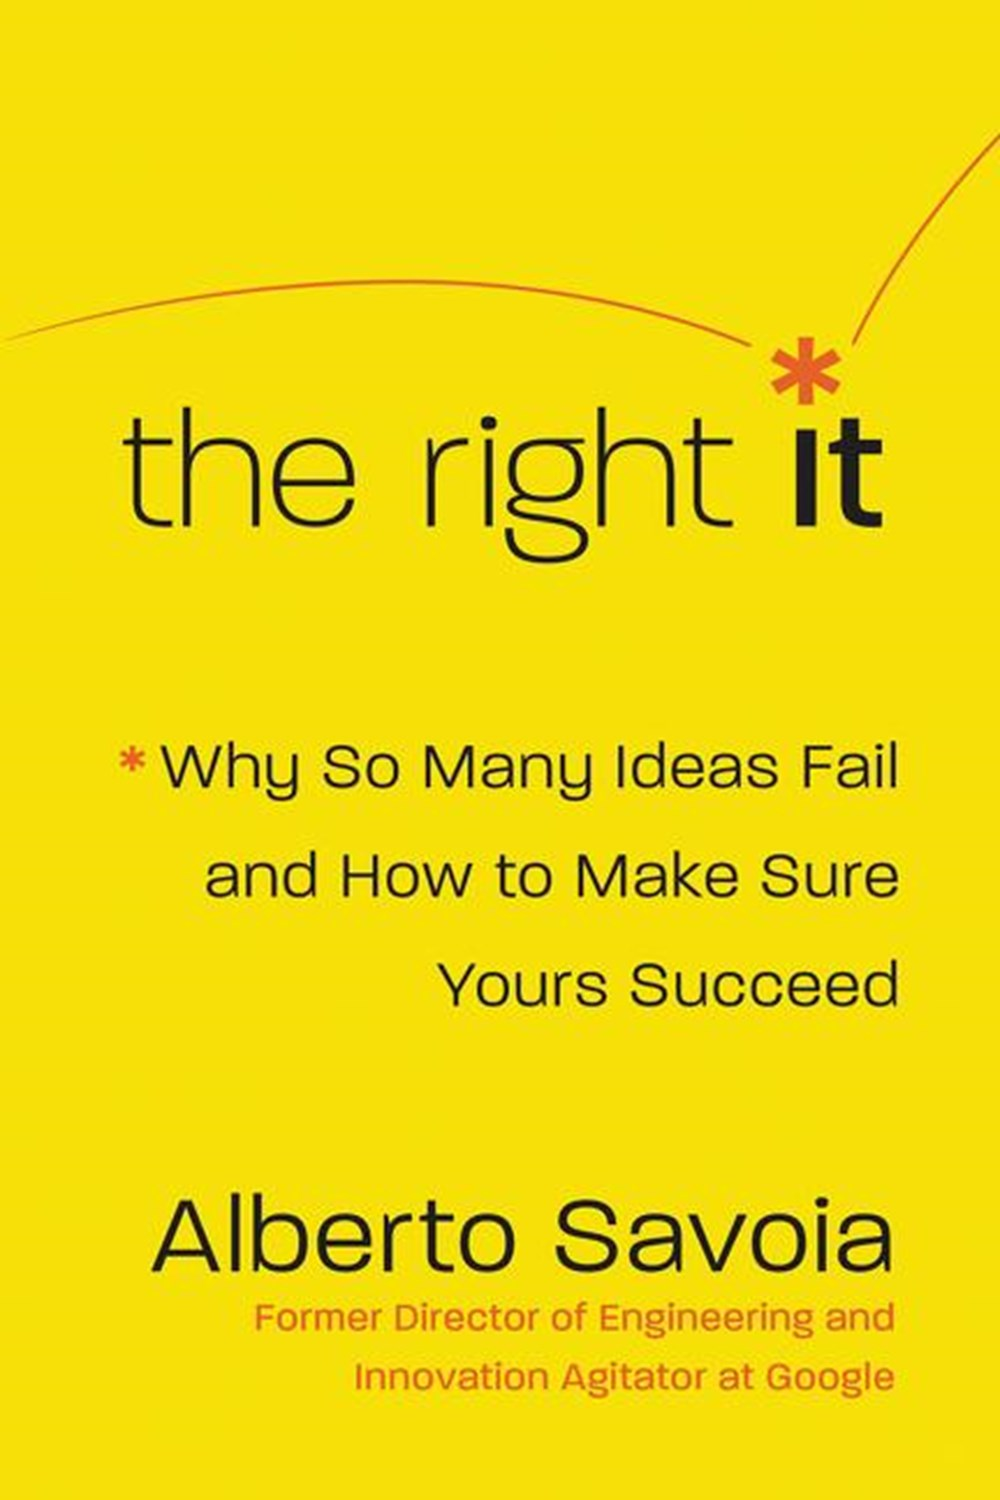 Right It Why So Many Ideas Fail and How to Make Sure Yours Succeed